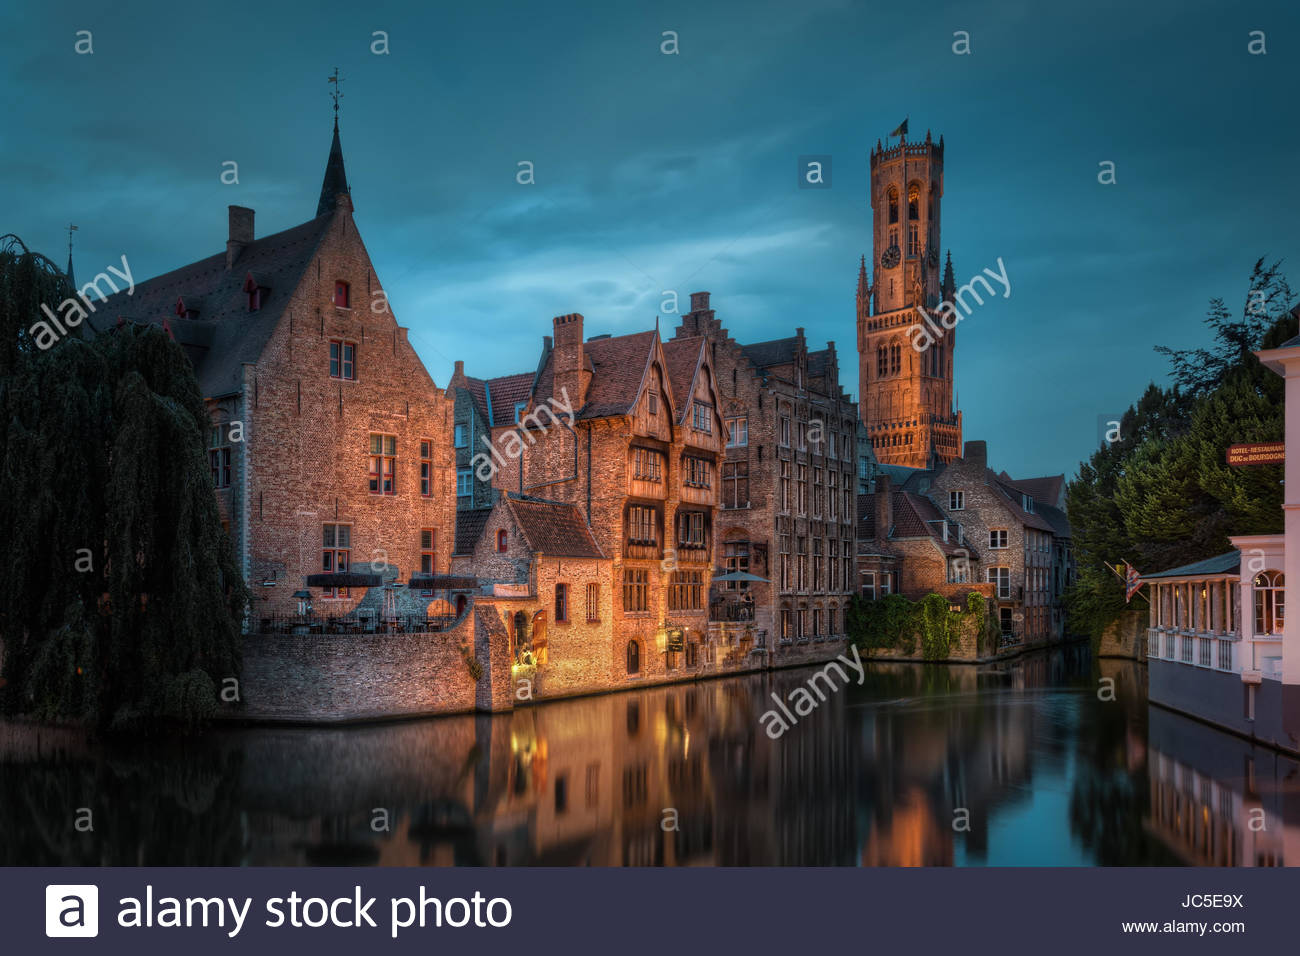 Near Venice Corner in the medieval town Bruges, Belgium, you find this beautiful view. Along with Amsterdam it's - Stock Image